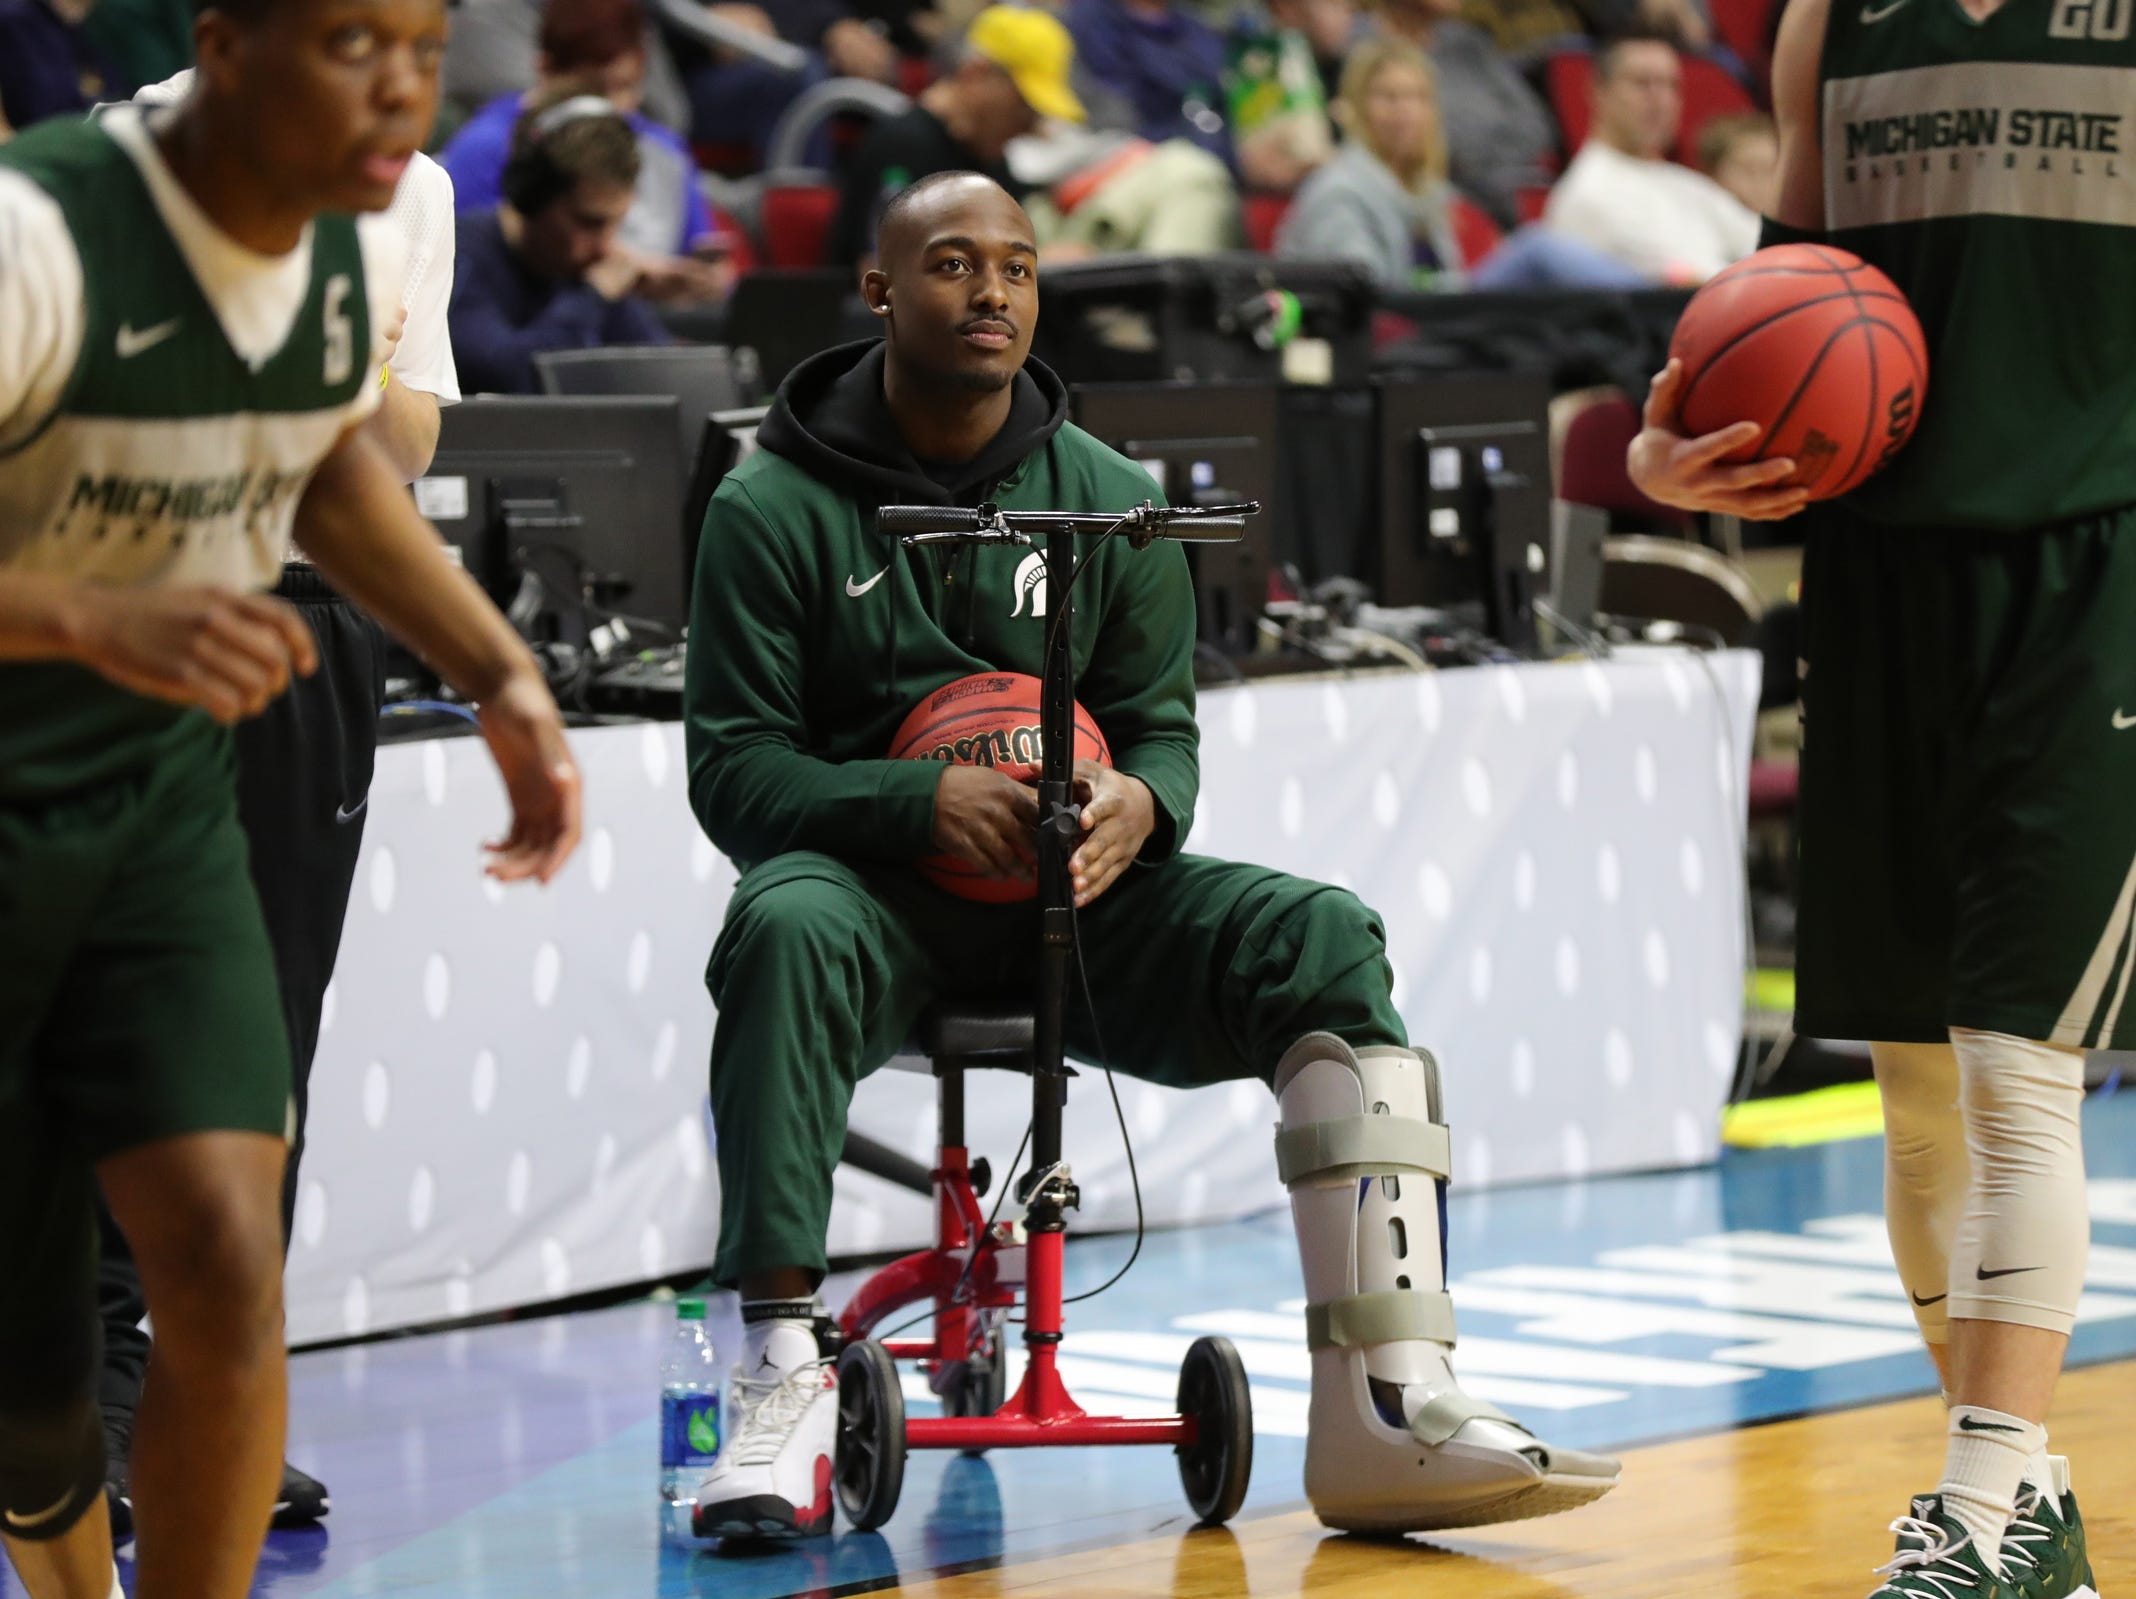 Injured Michigan State player Joshua Langford watches drills as the team prepares for the first-round NCAA tournament game against Michigan State on Wednesday, March 20, 2019 at Wells Fargo Arena in Des Moines, Iowa.